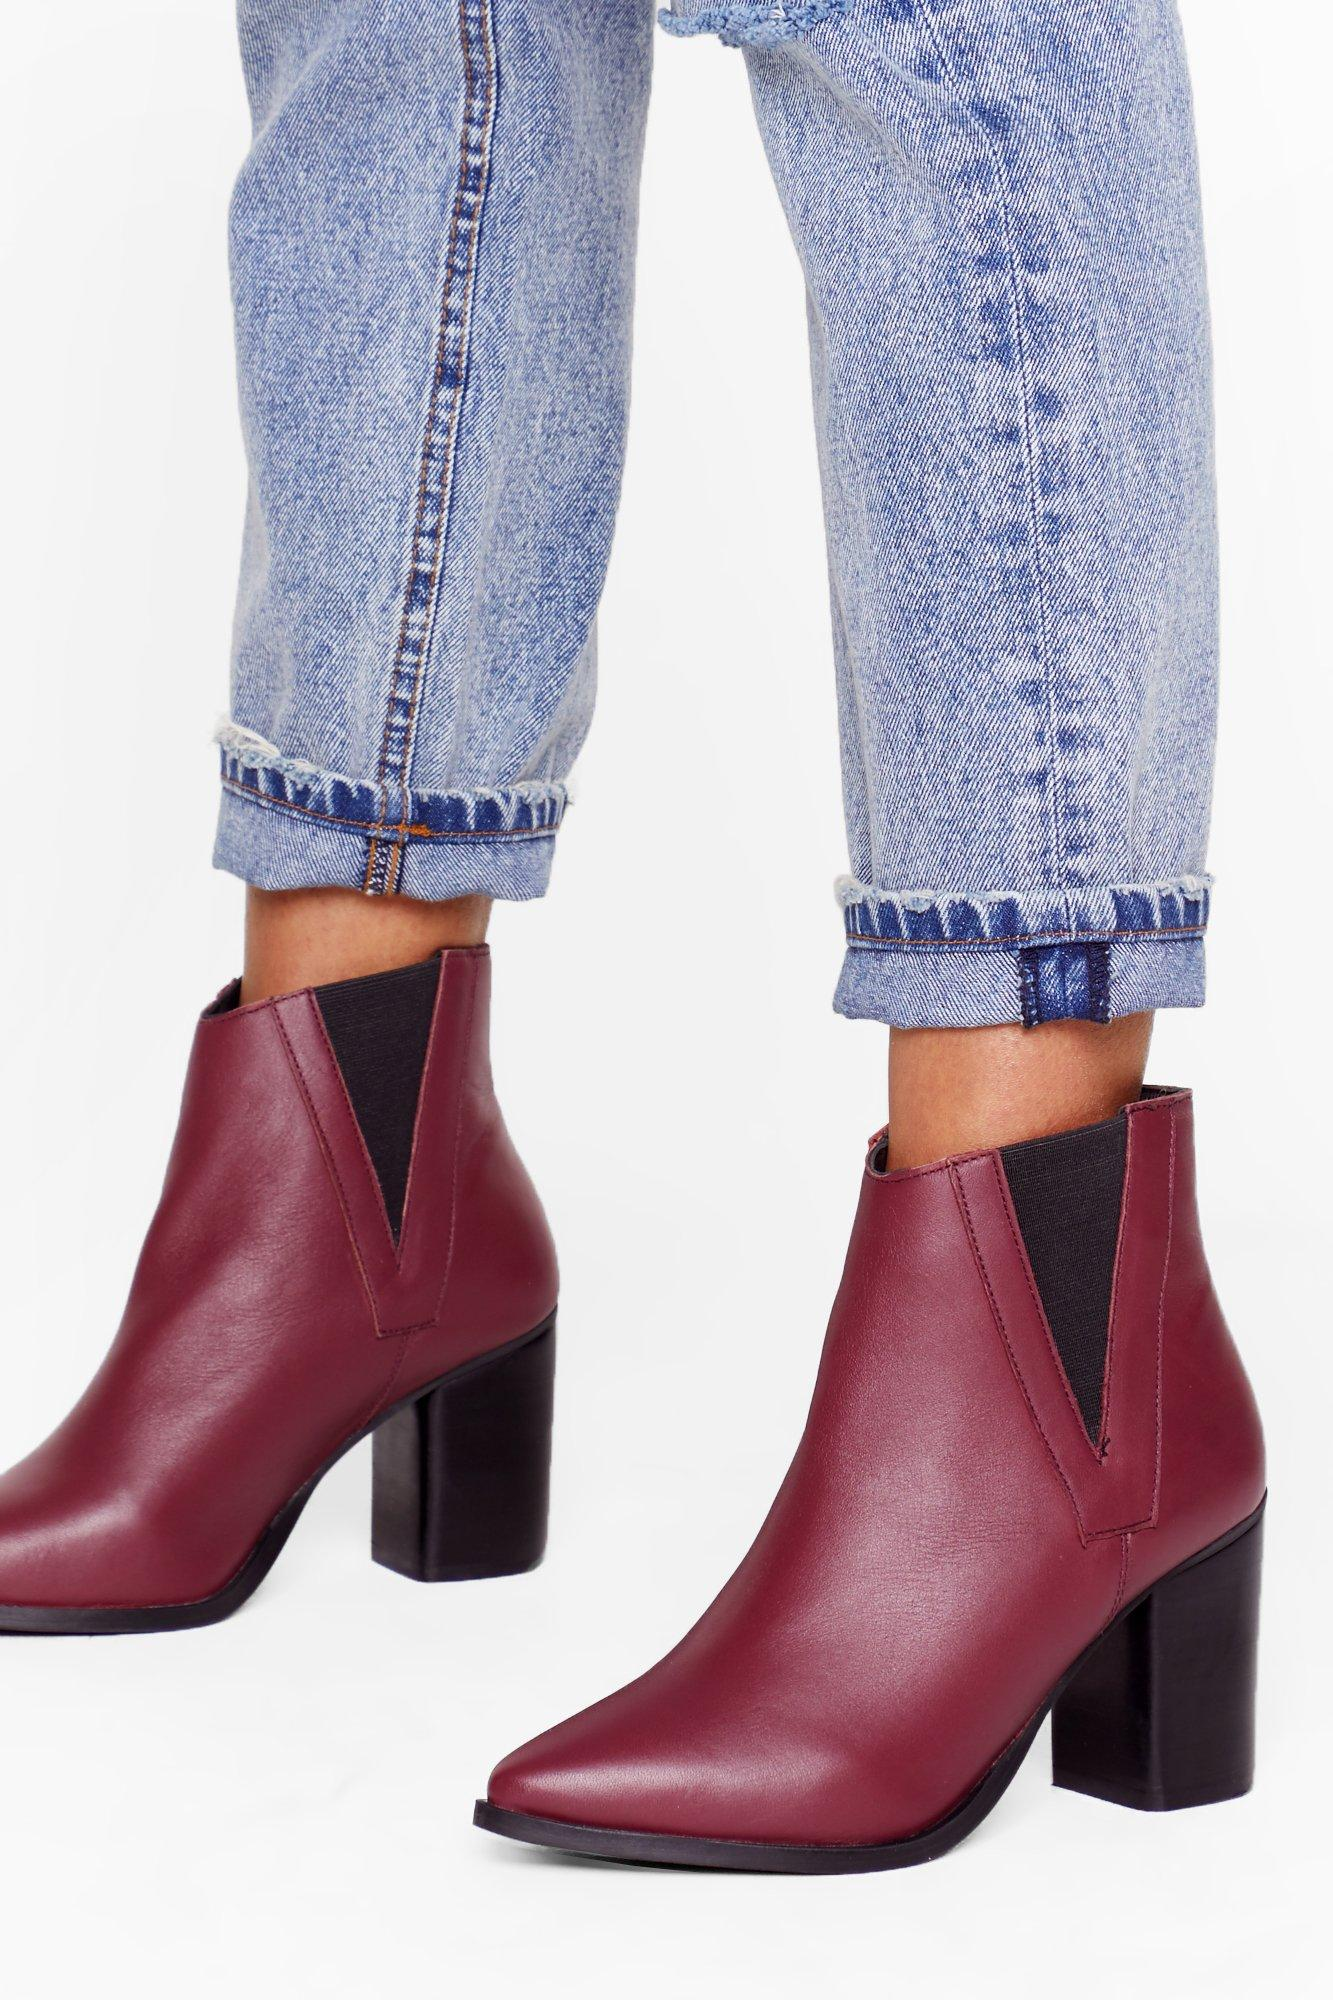 Image of My Best Side Leather Heeled Boots